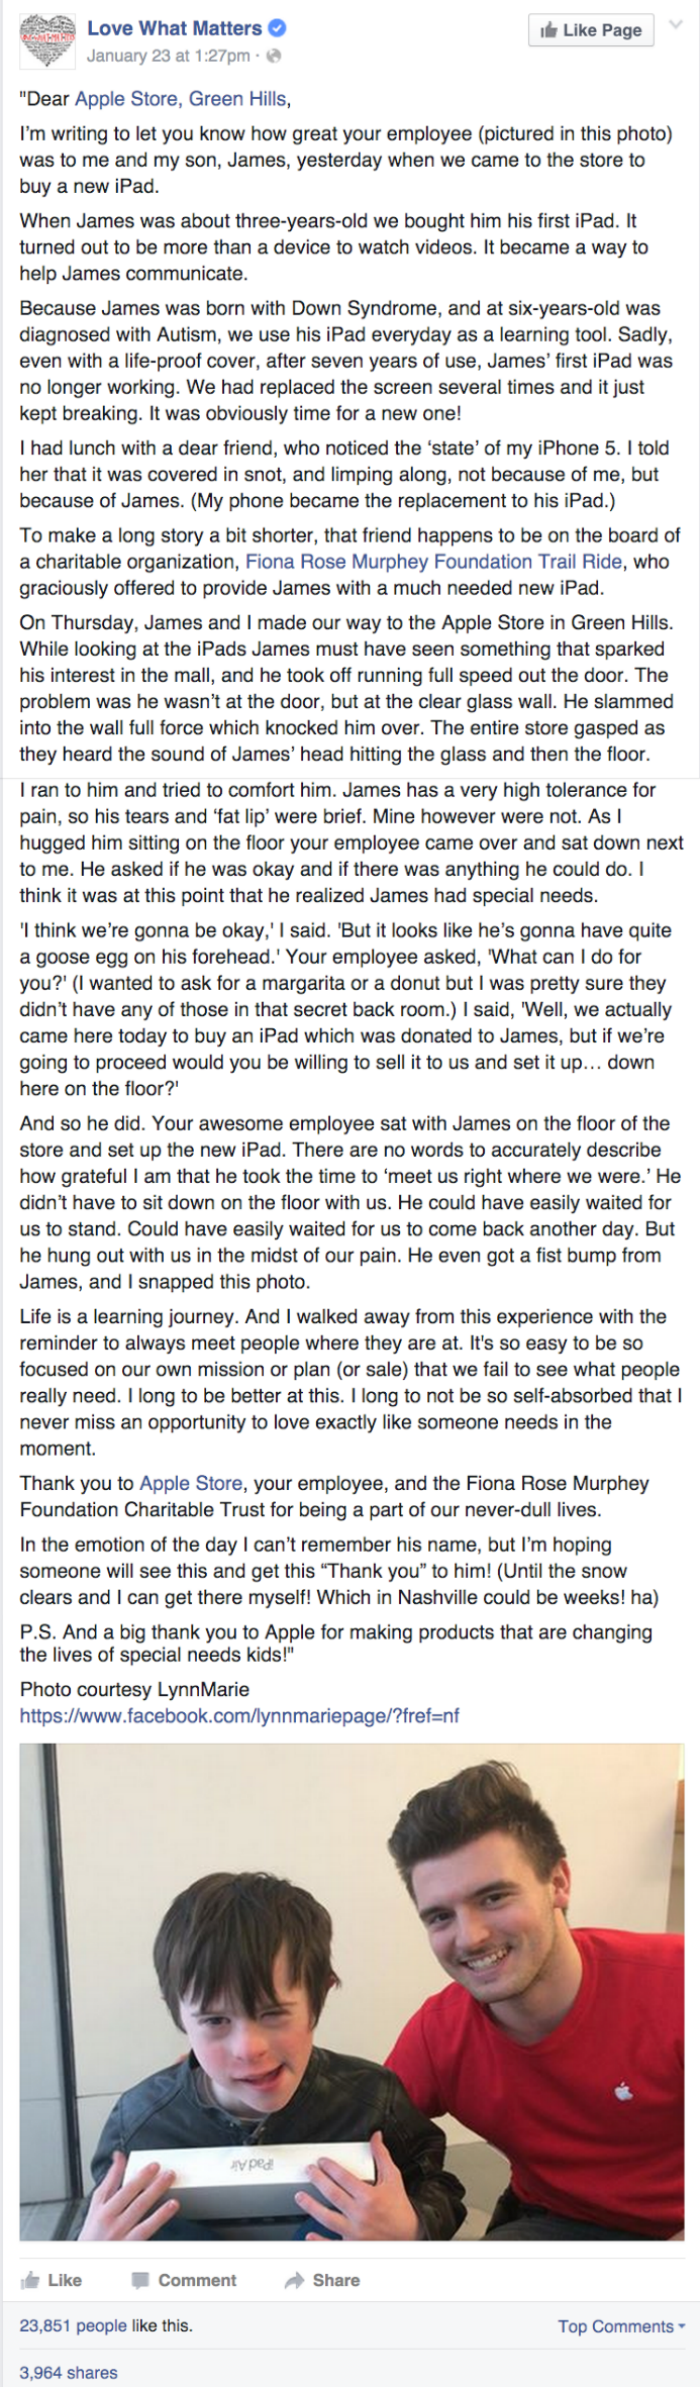 heartwarming parenting facebook post about patient and kind apple store employee